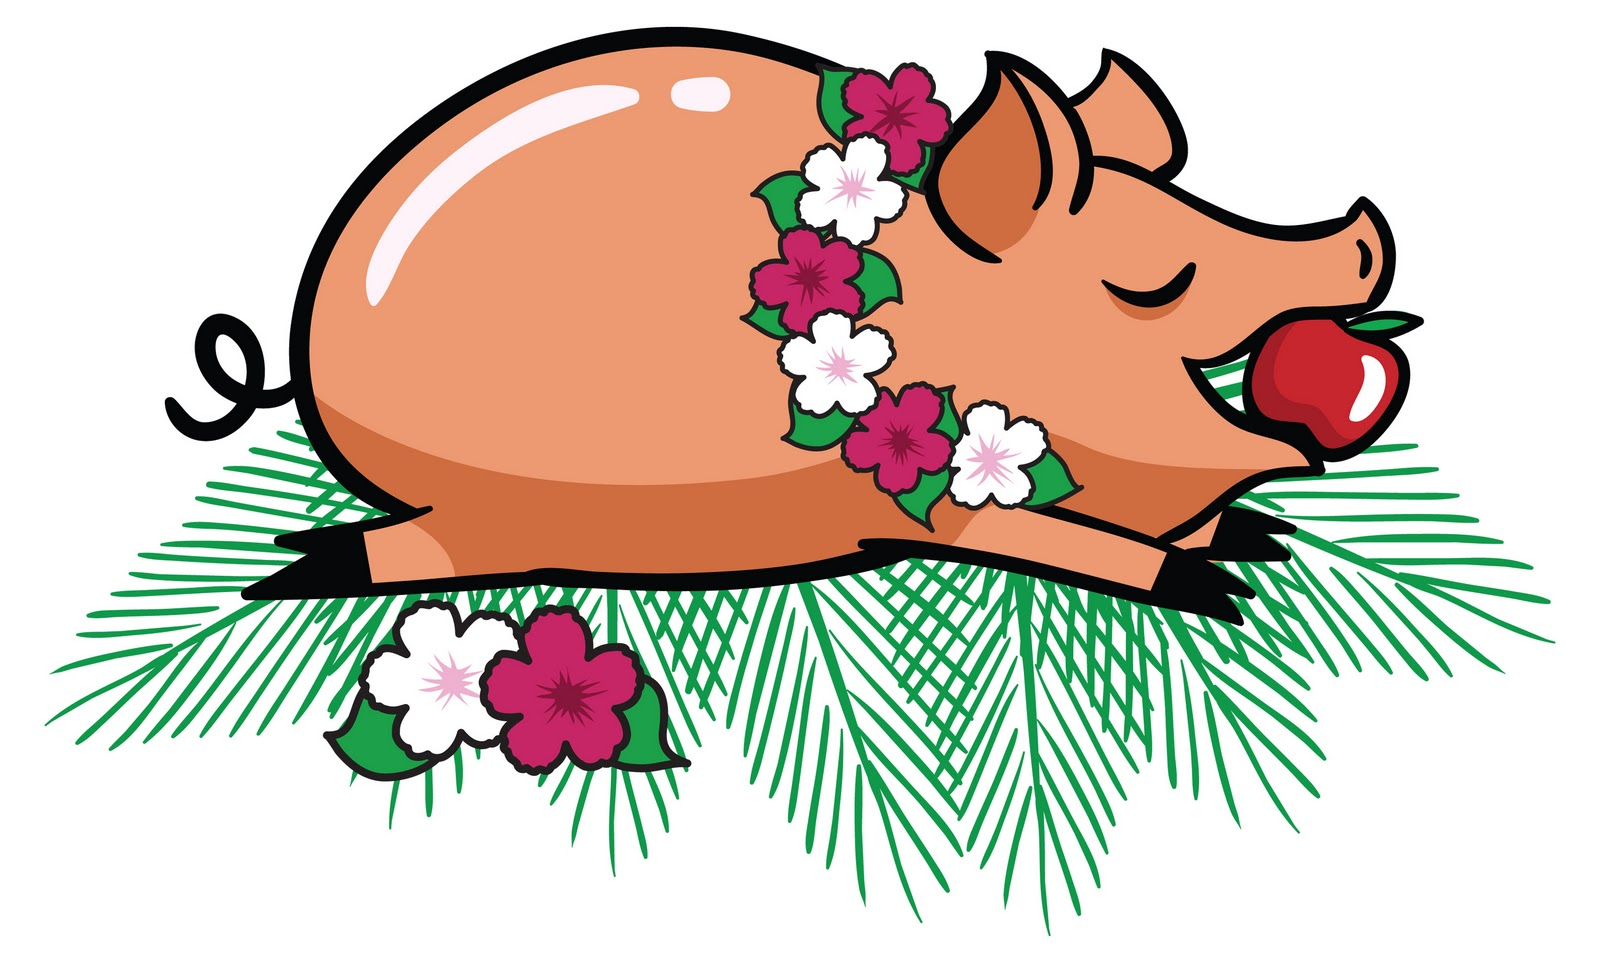 Pork clipart roasted pig Library Download Free Free Free